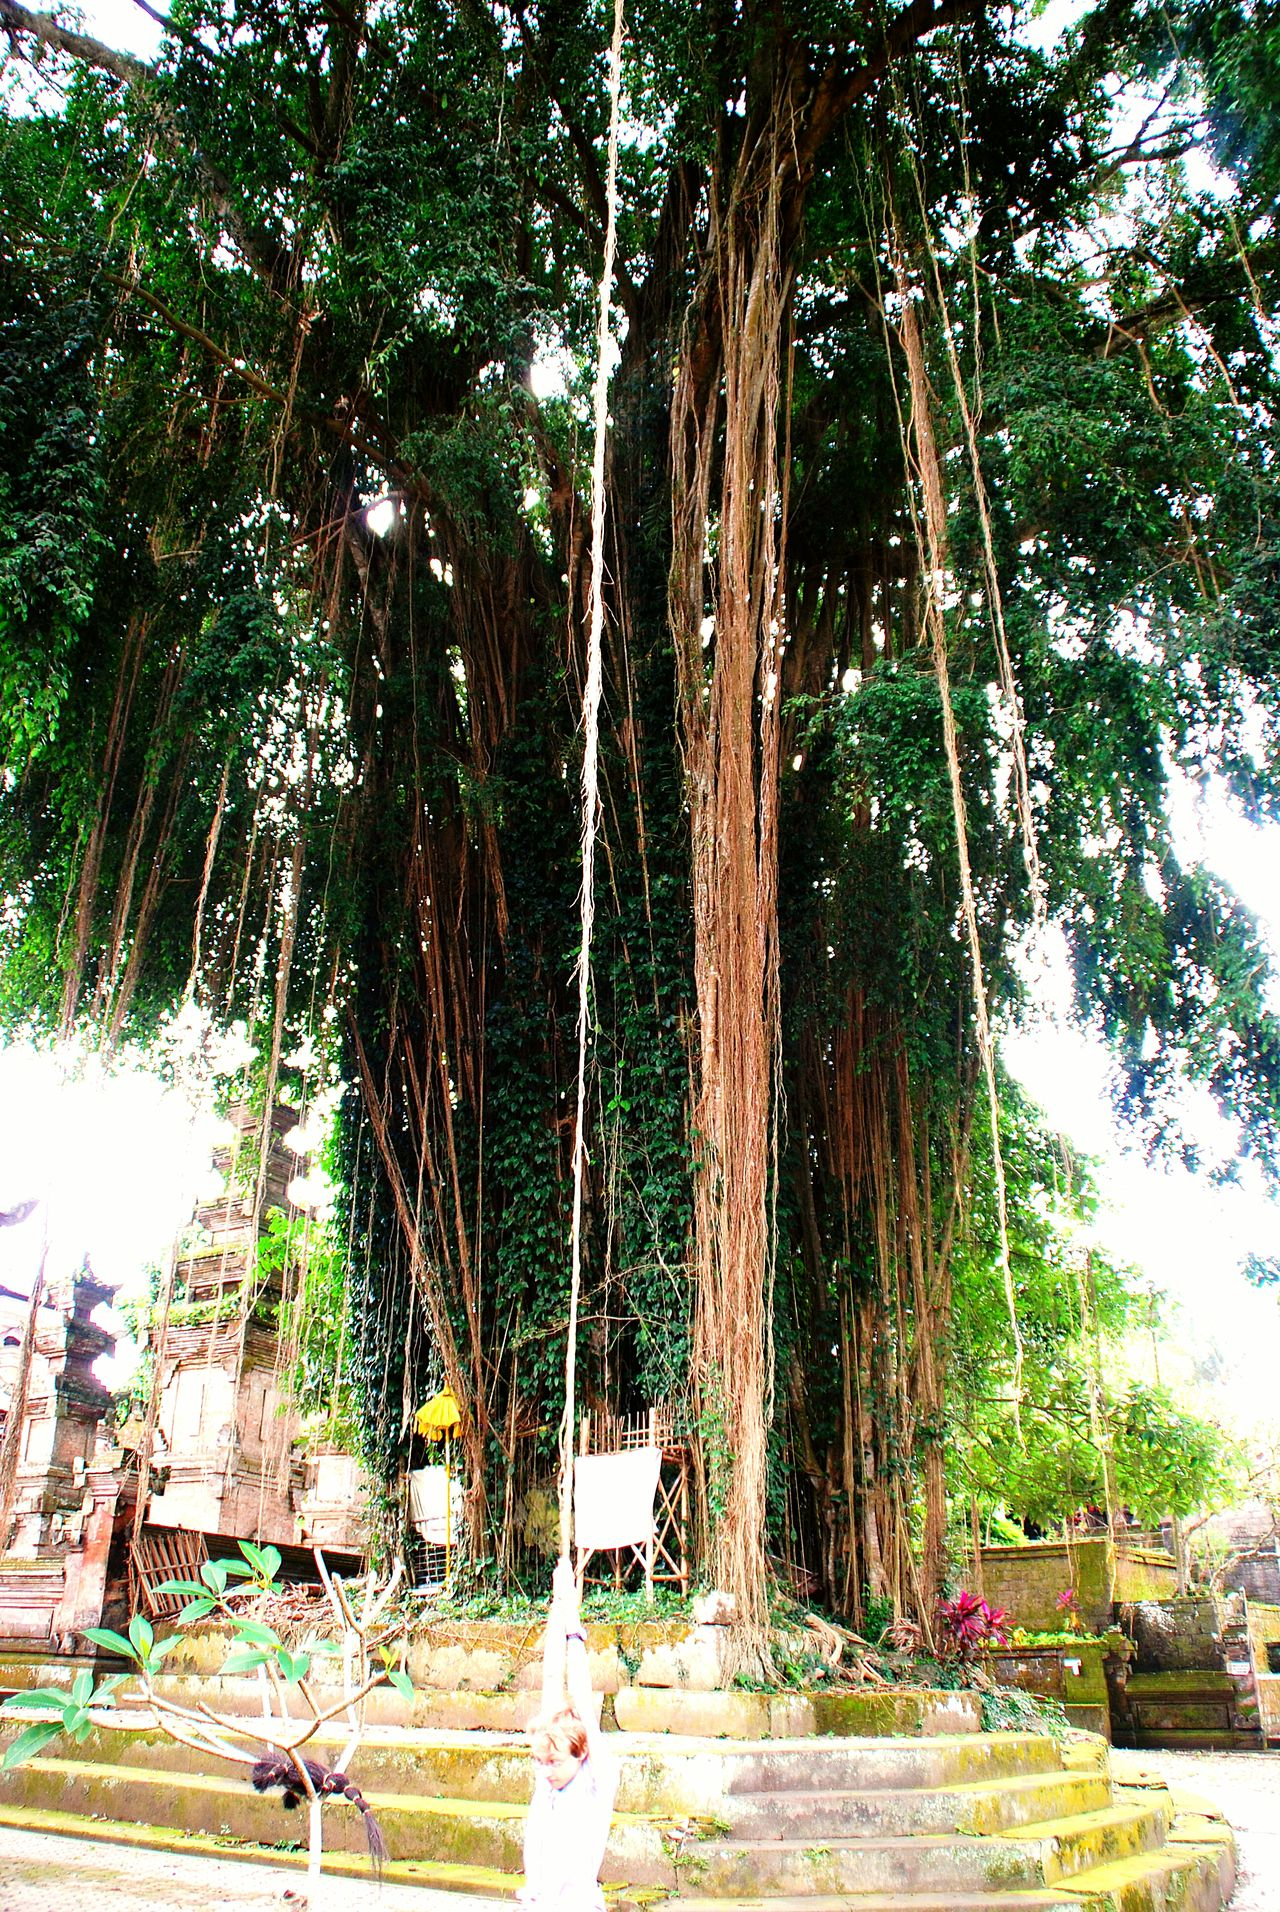 Baum Tree TreePorn Hugging A Tree Tree_collection  Grün Bali Indonesien INDONESIA EyeEm Indonesia Liane Liana Green Greenery Green Green Green!  Showcase: January